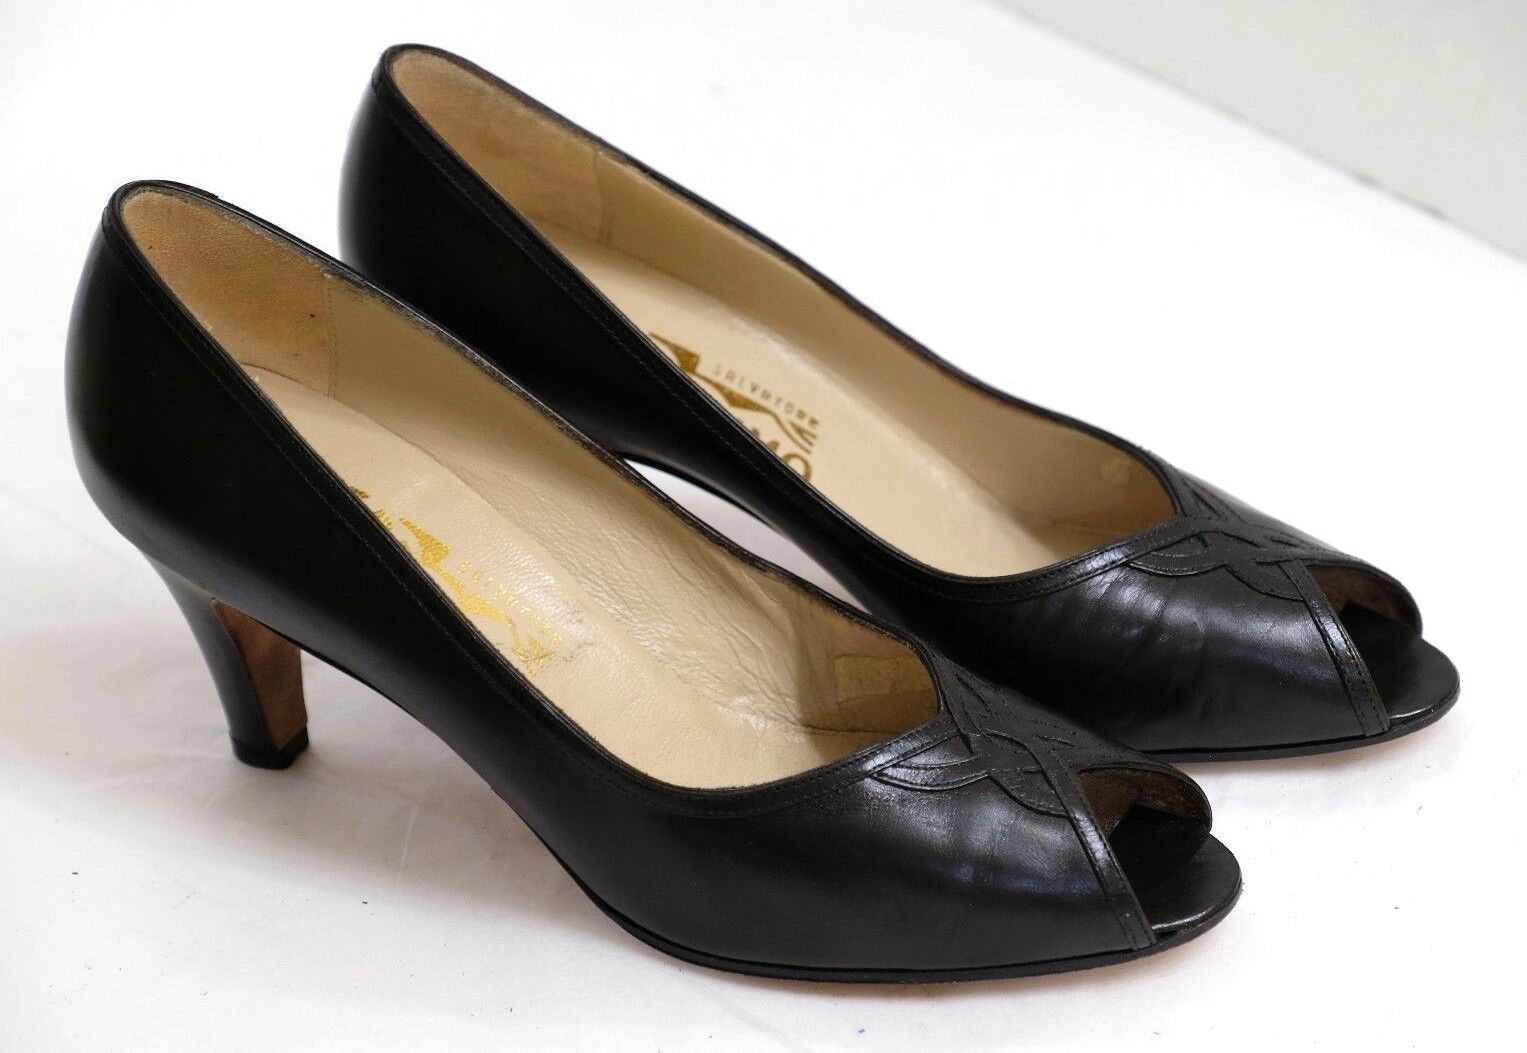 VGUC+ Salvatore Ferragamo Women's Size 6.5AA Black Leather Celtic Open Toe Pumps